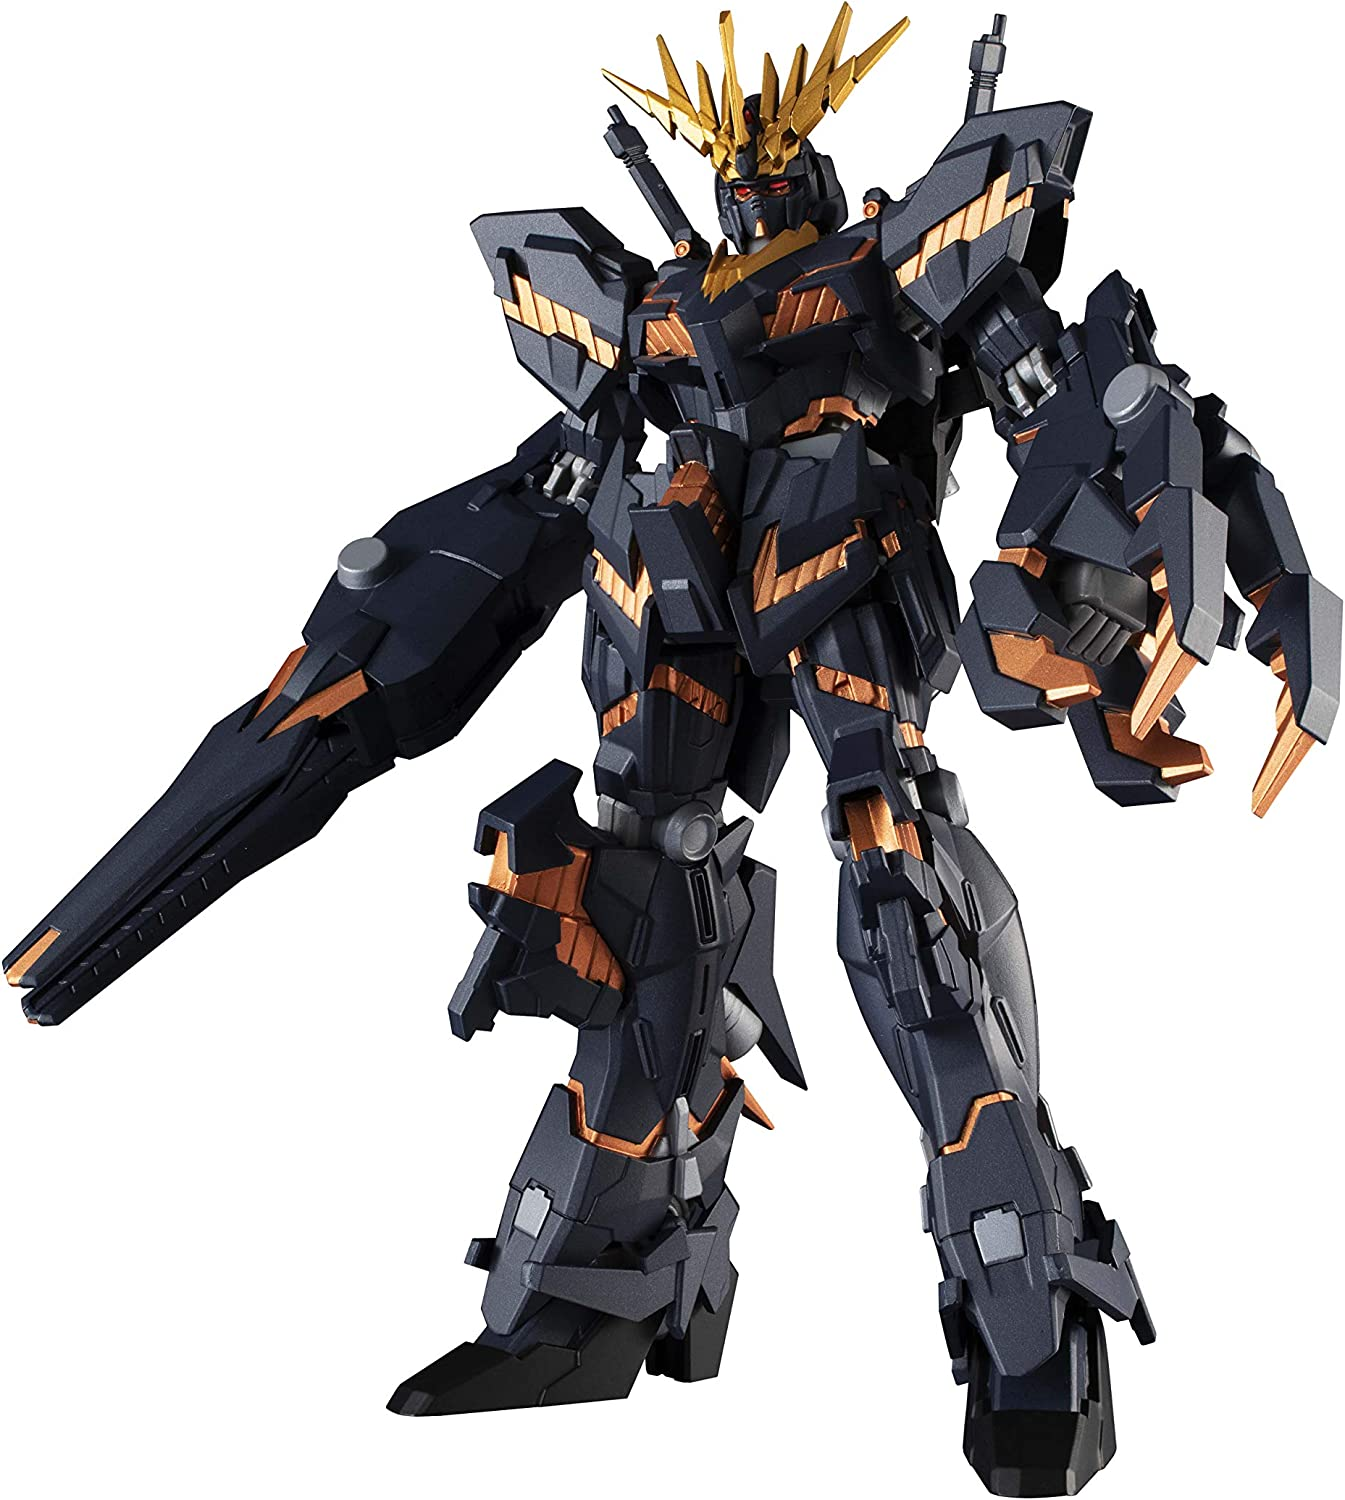 TAMASHII Don't miss the campaign NATIONS 5 ☆ very popular Rx-0 Unicorn Gundam Unit Suit 02 Banshee Mobile